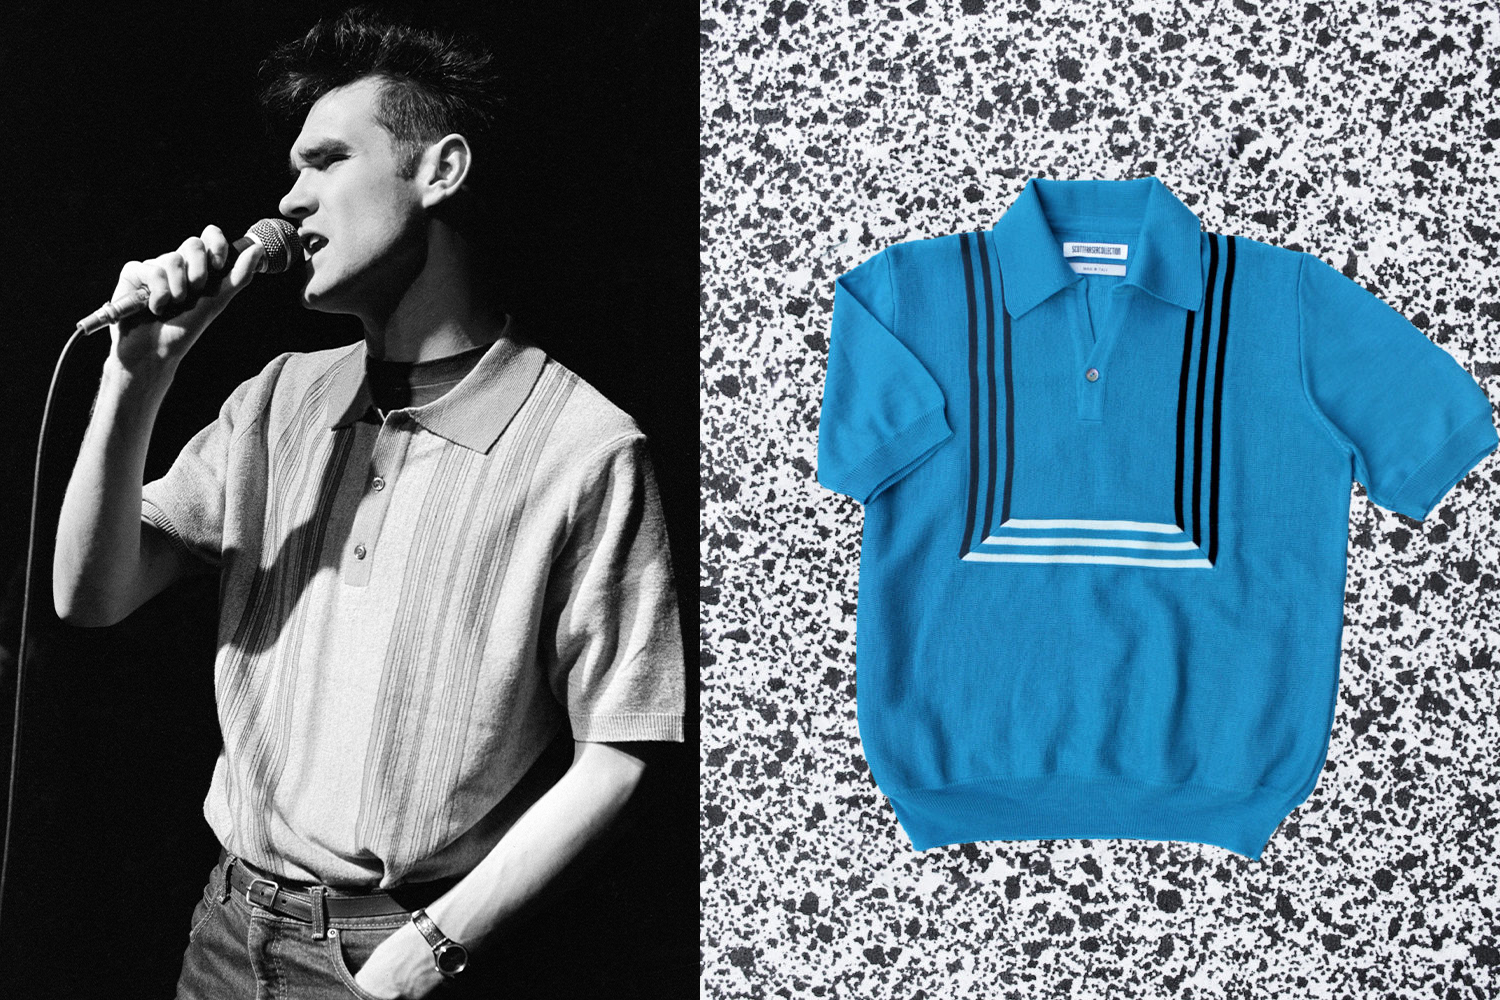 The knitted polo shirt